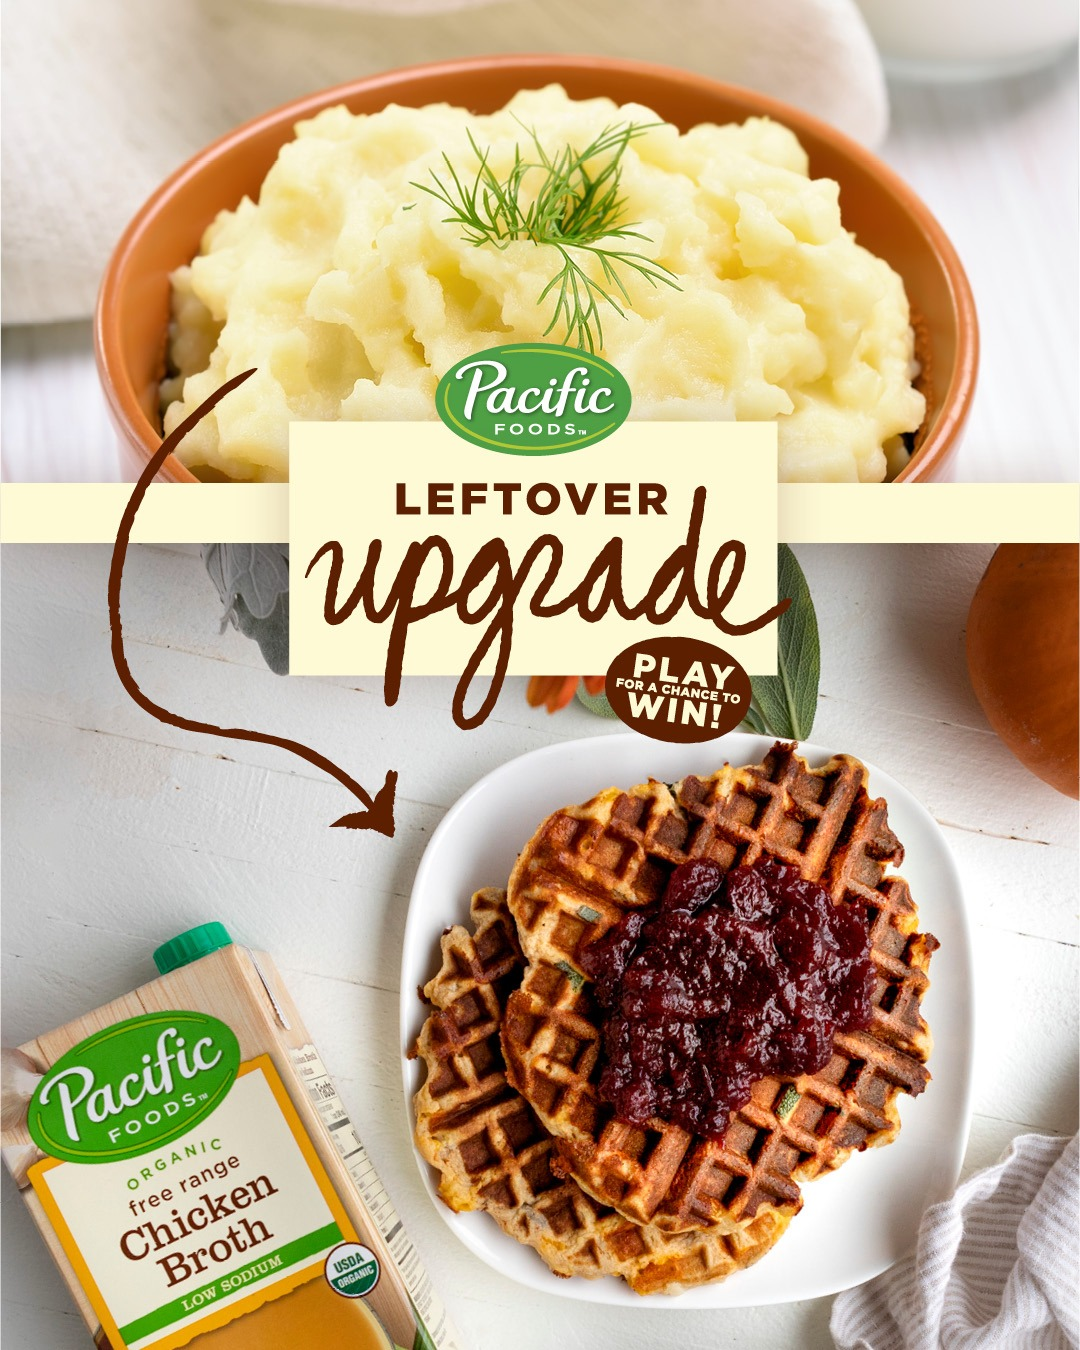 Pacific Foods' Leftover Upgrade Interactive Video Consumer Sweepstakes